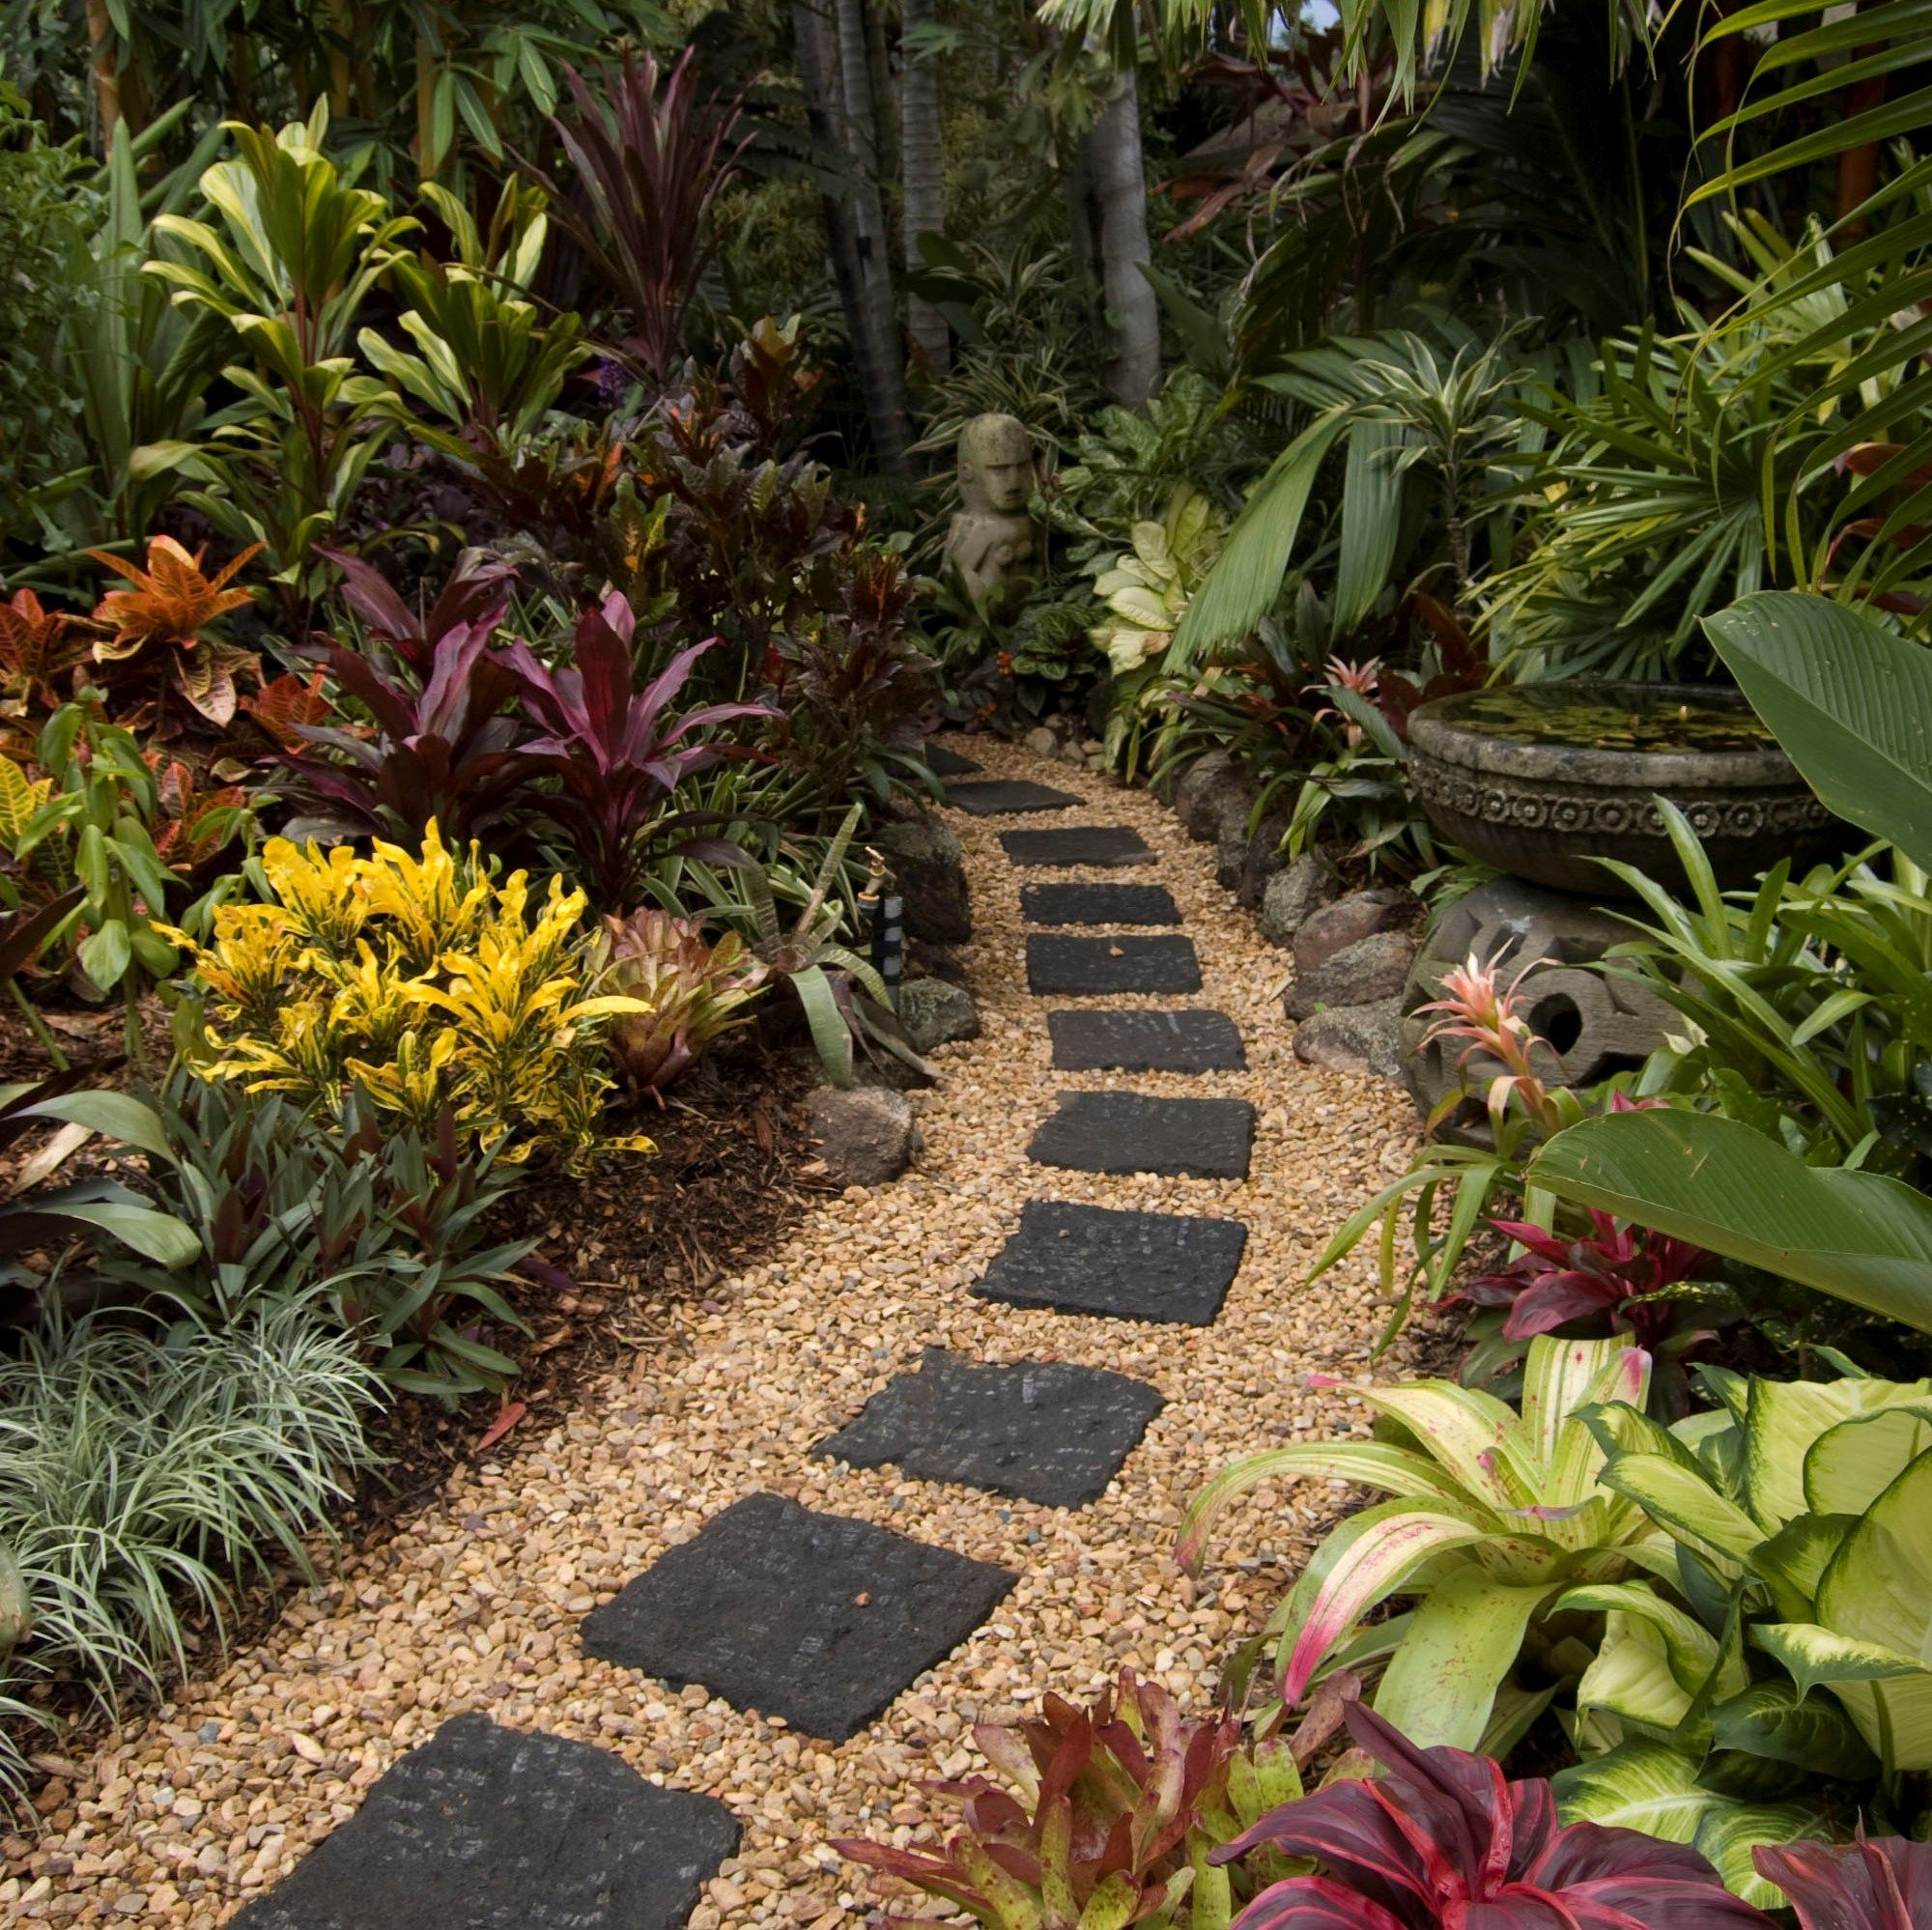 lanscaping design paver path garden ideas maisonidee home